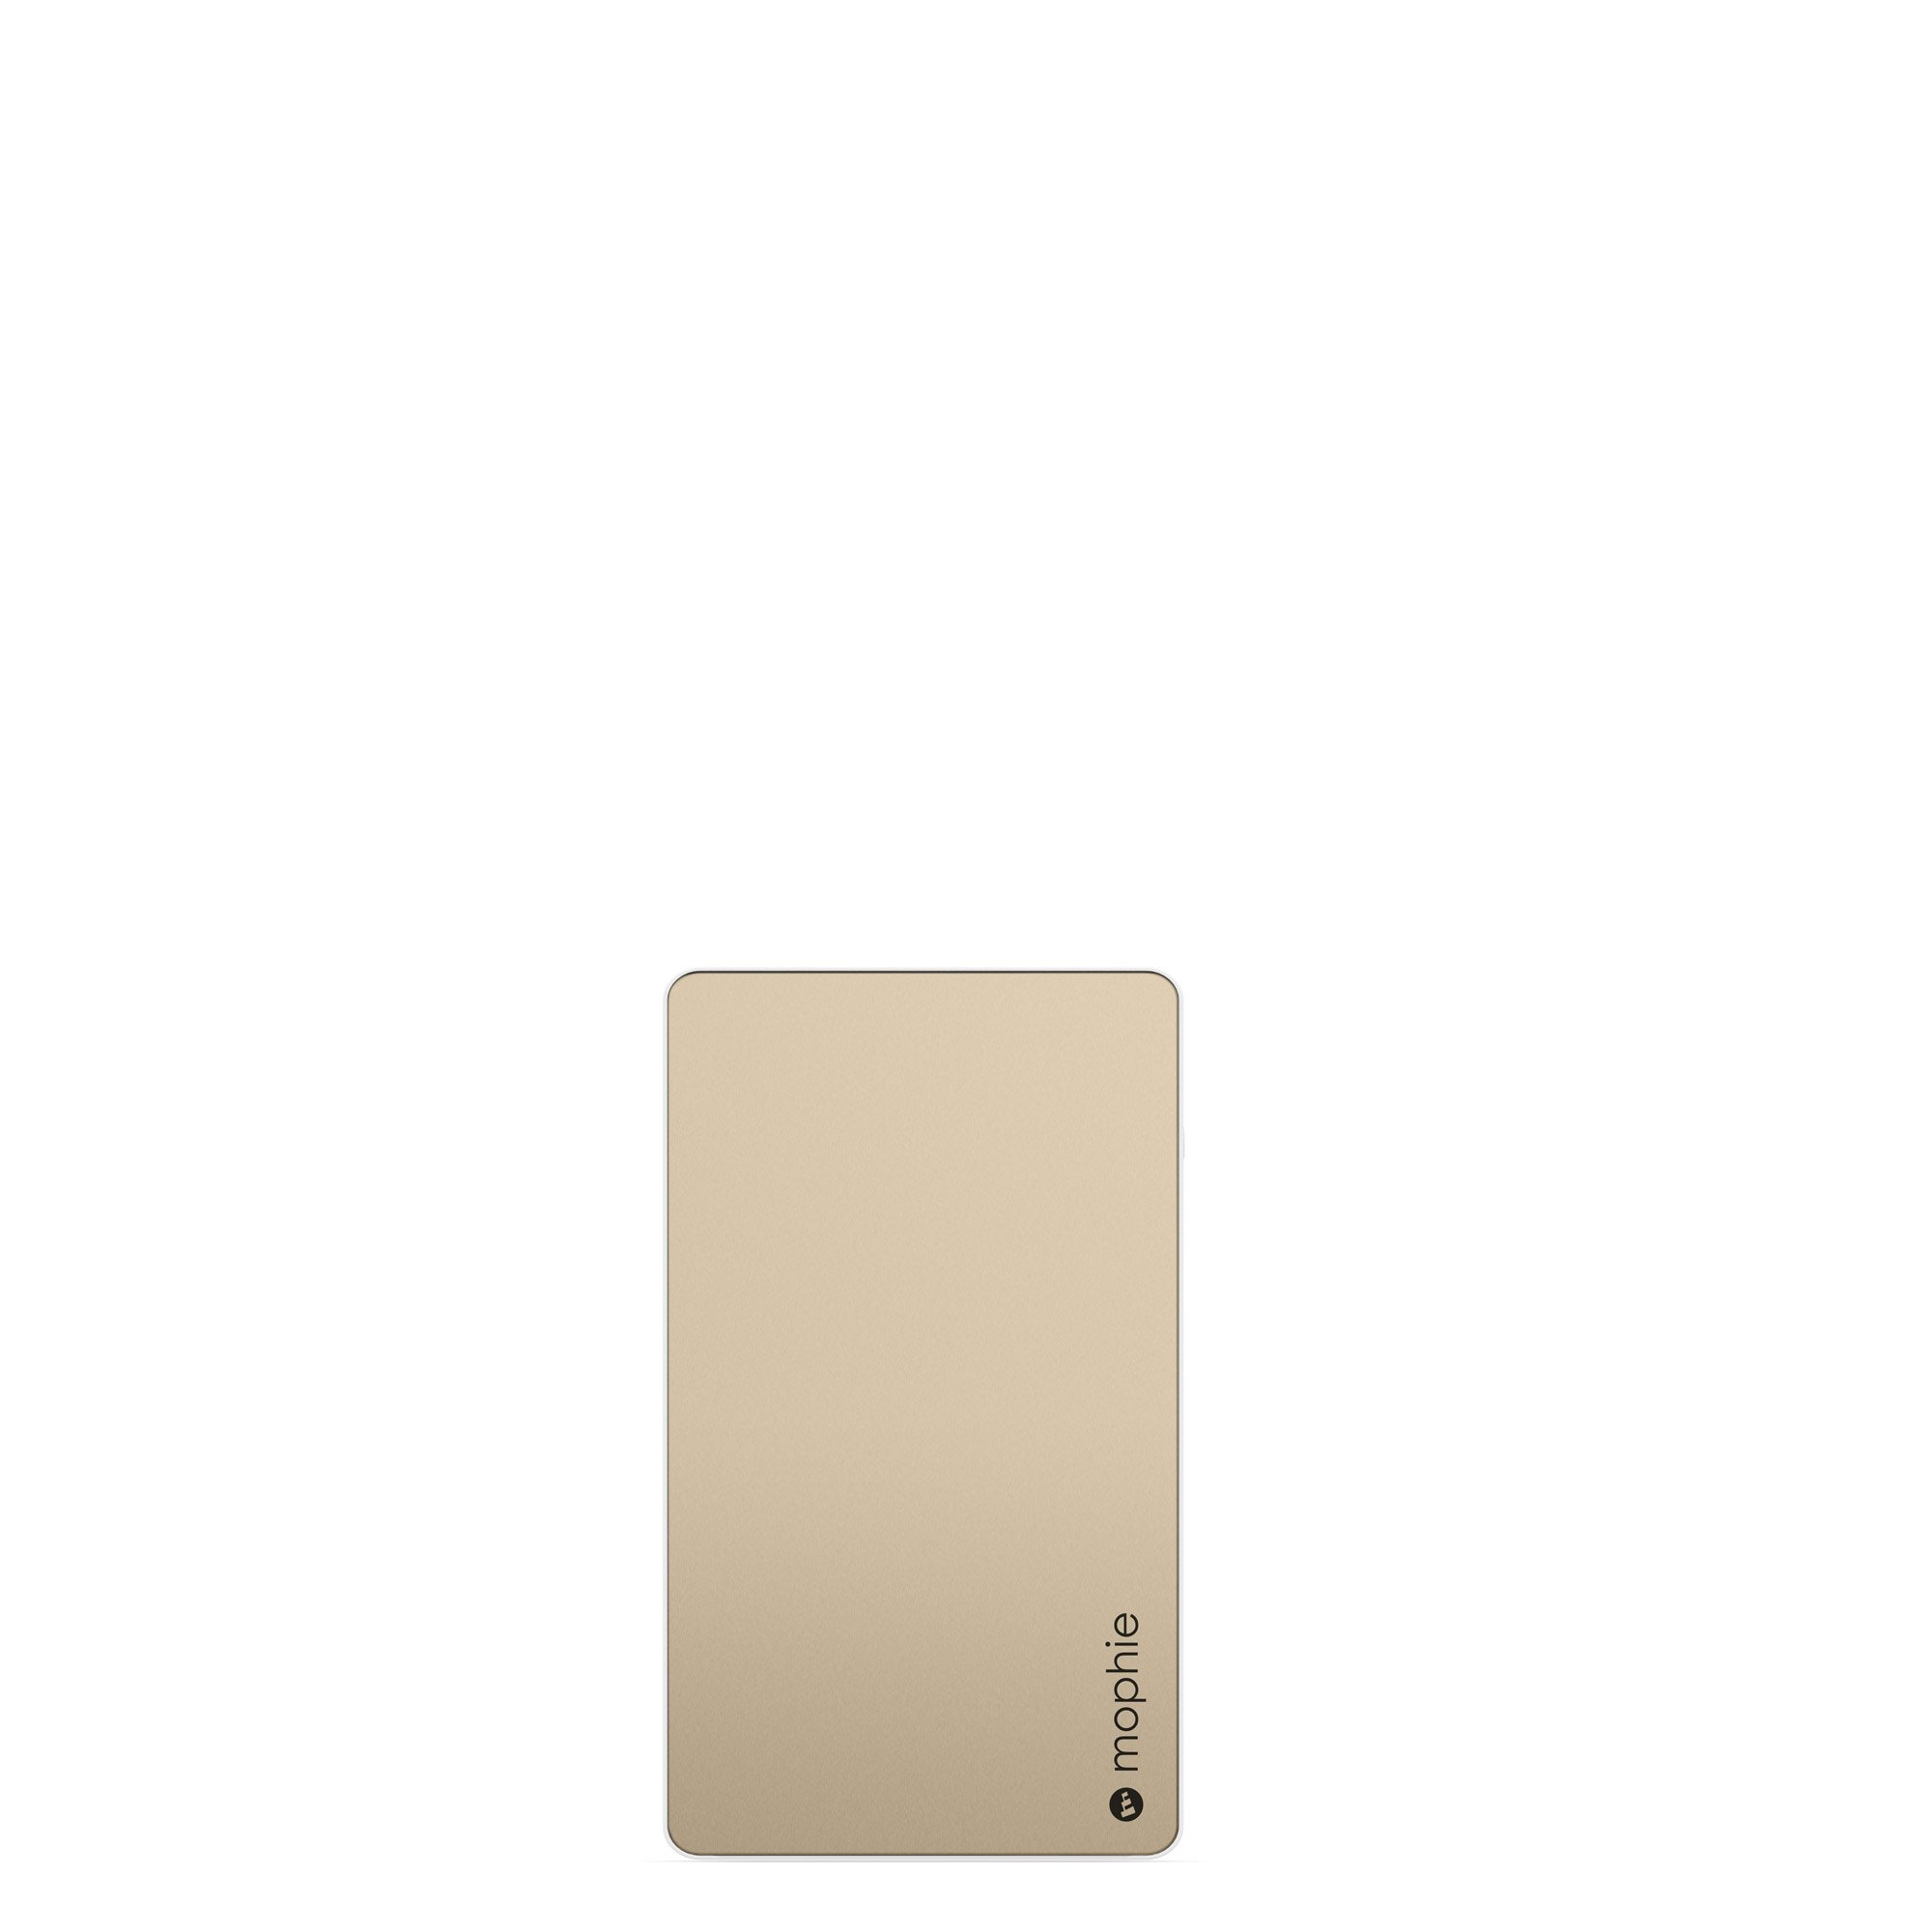 mophie PowerStation - Universal External Battery - Made for Smartphones and Tablets (6,000mAh) - Gold